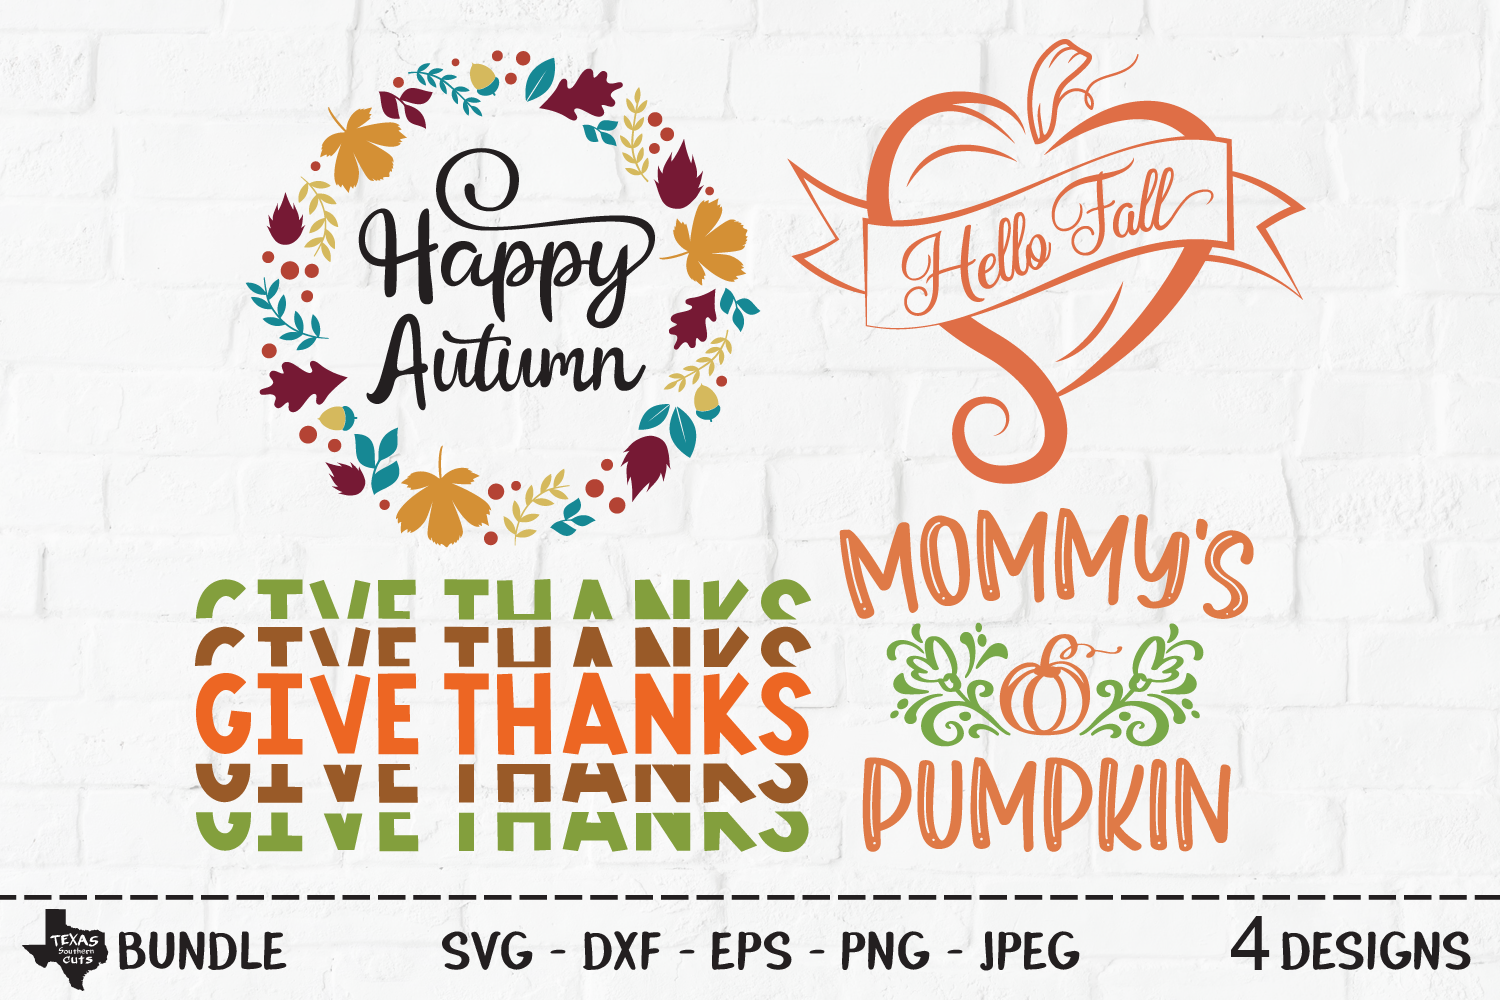 Fall Bundle Fall Designs Graphic By Texassoutherncuts Creative Fabrica